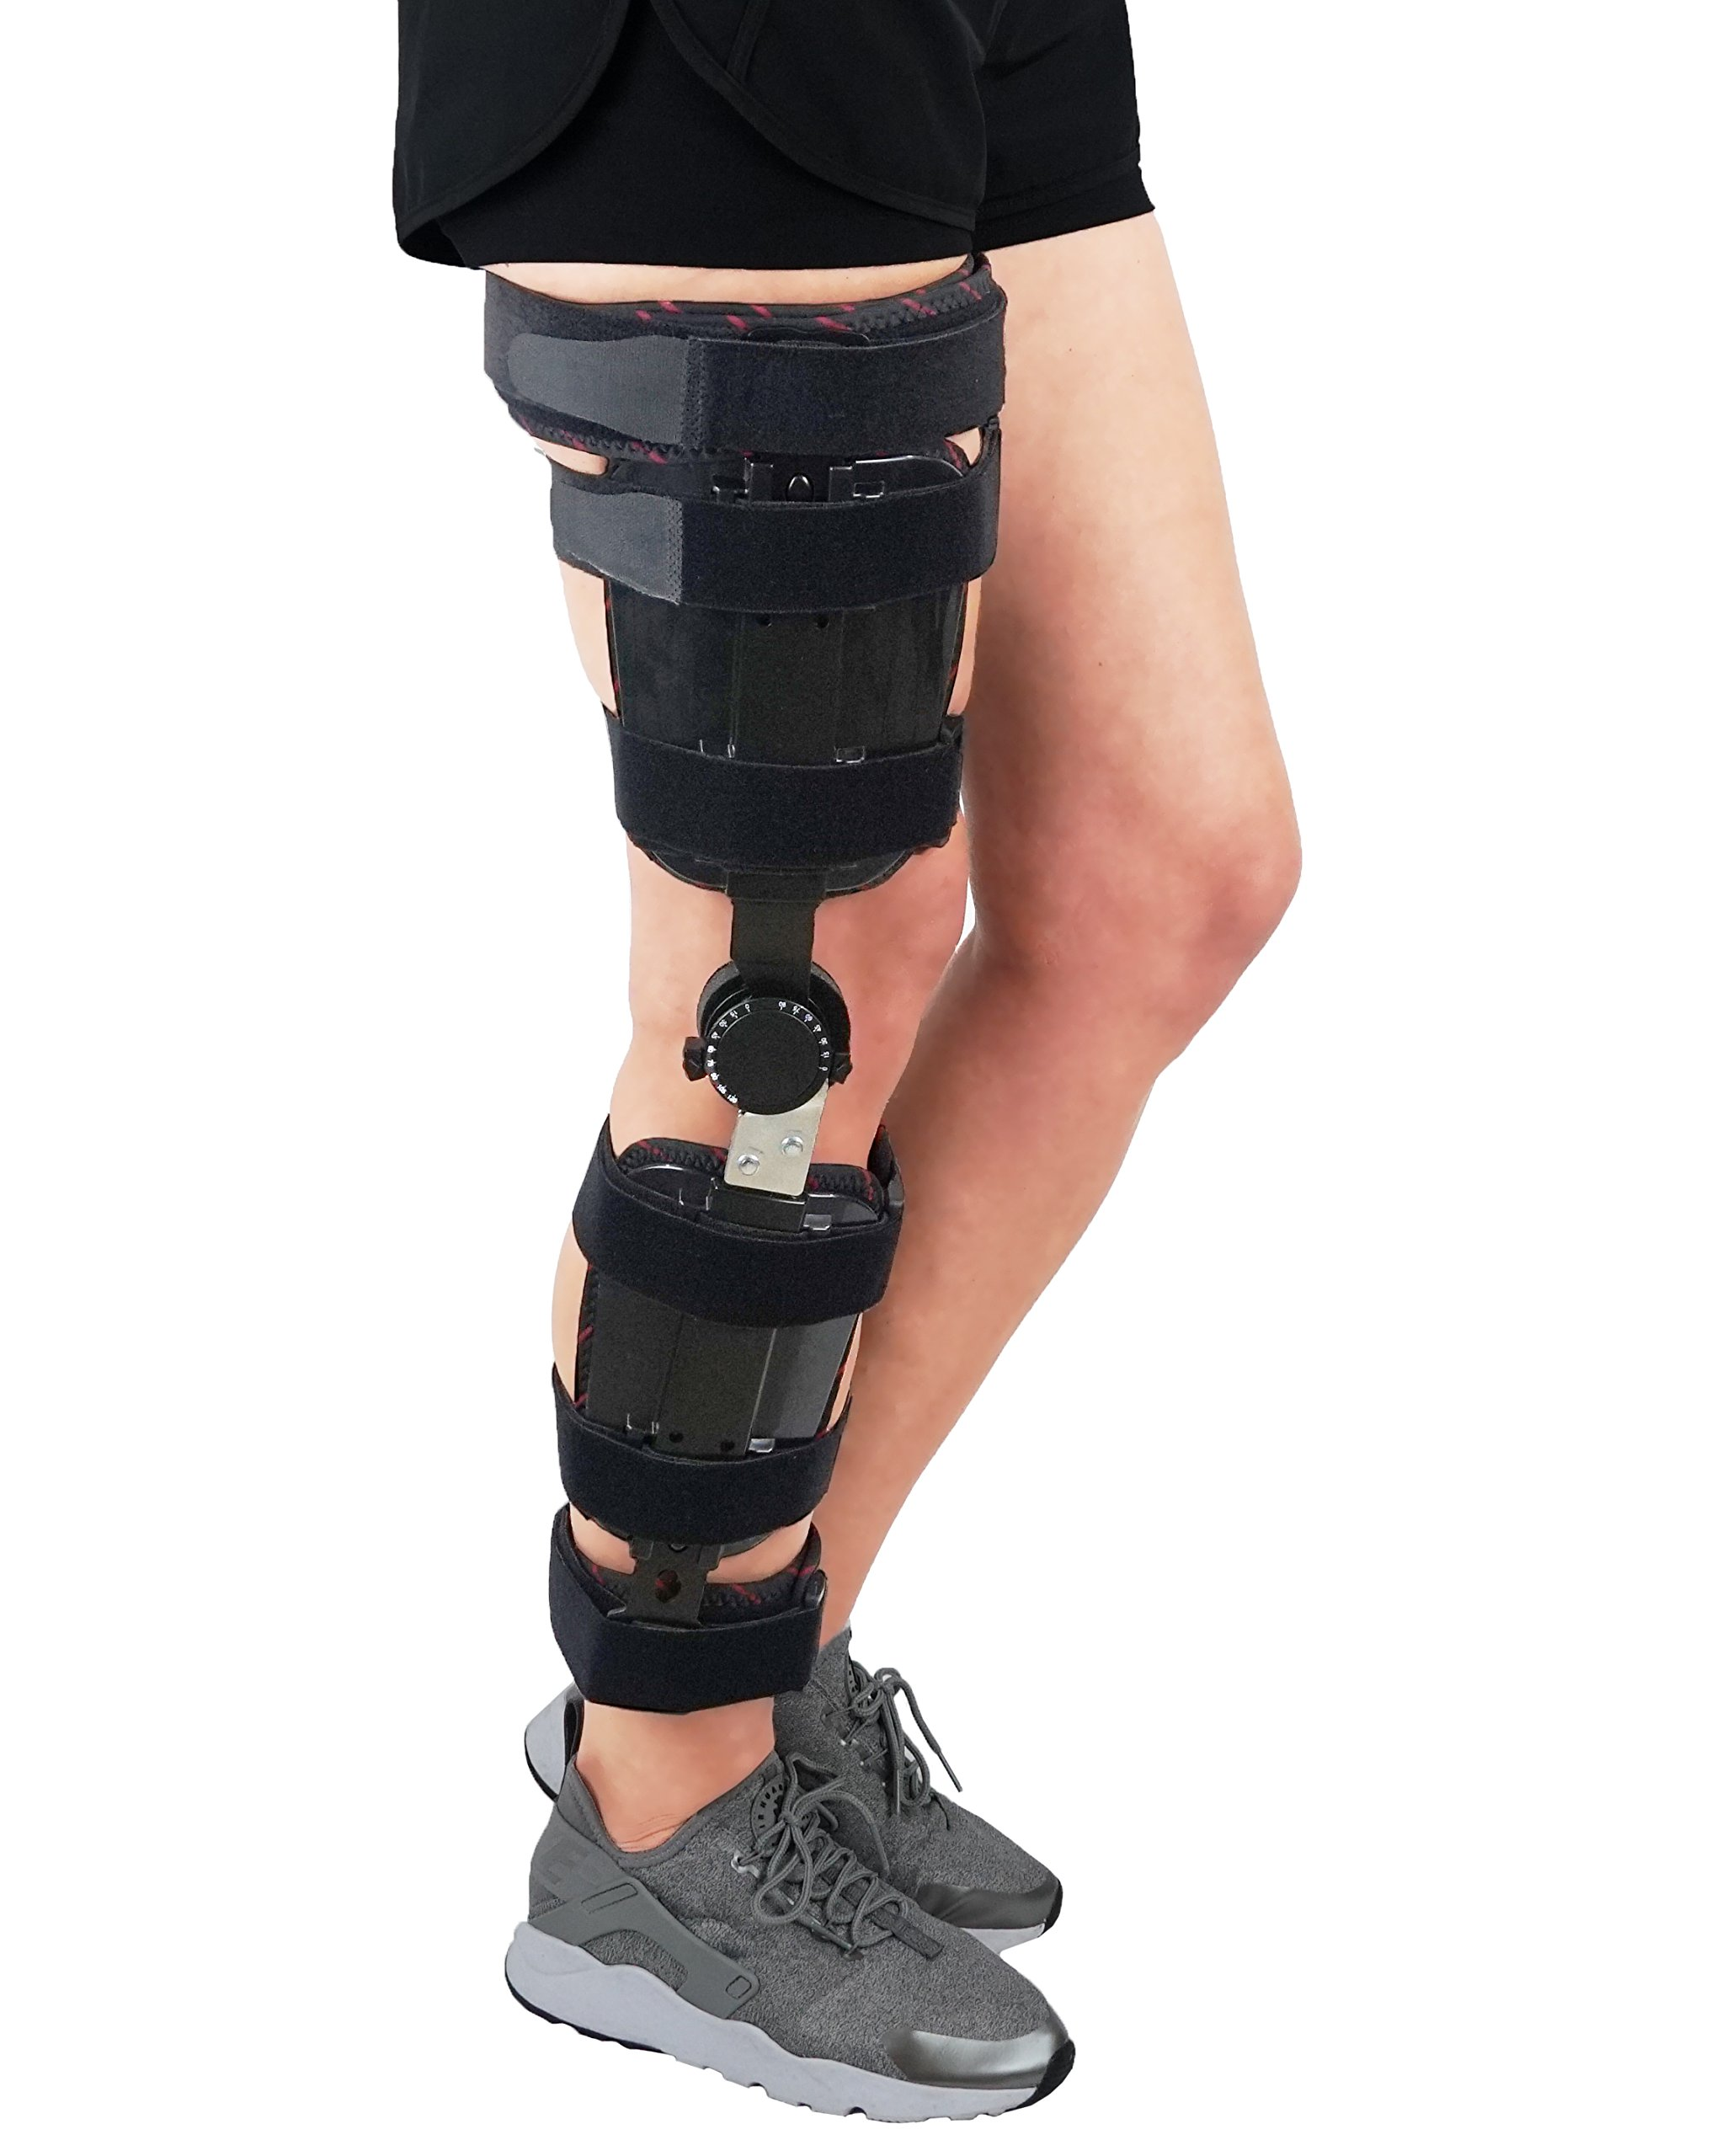 ORTONYX Hinged Adjustable Knee Brace Support Stabilizer Immobilizer - One Size Fits Most - Black